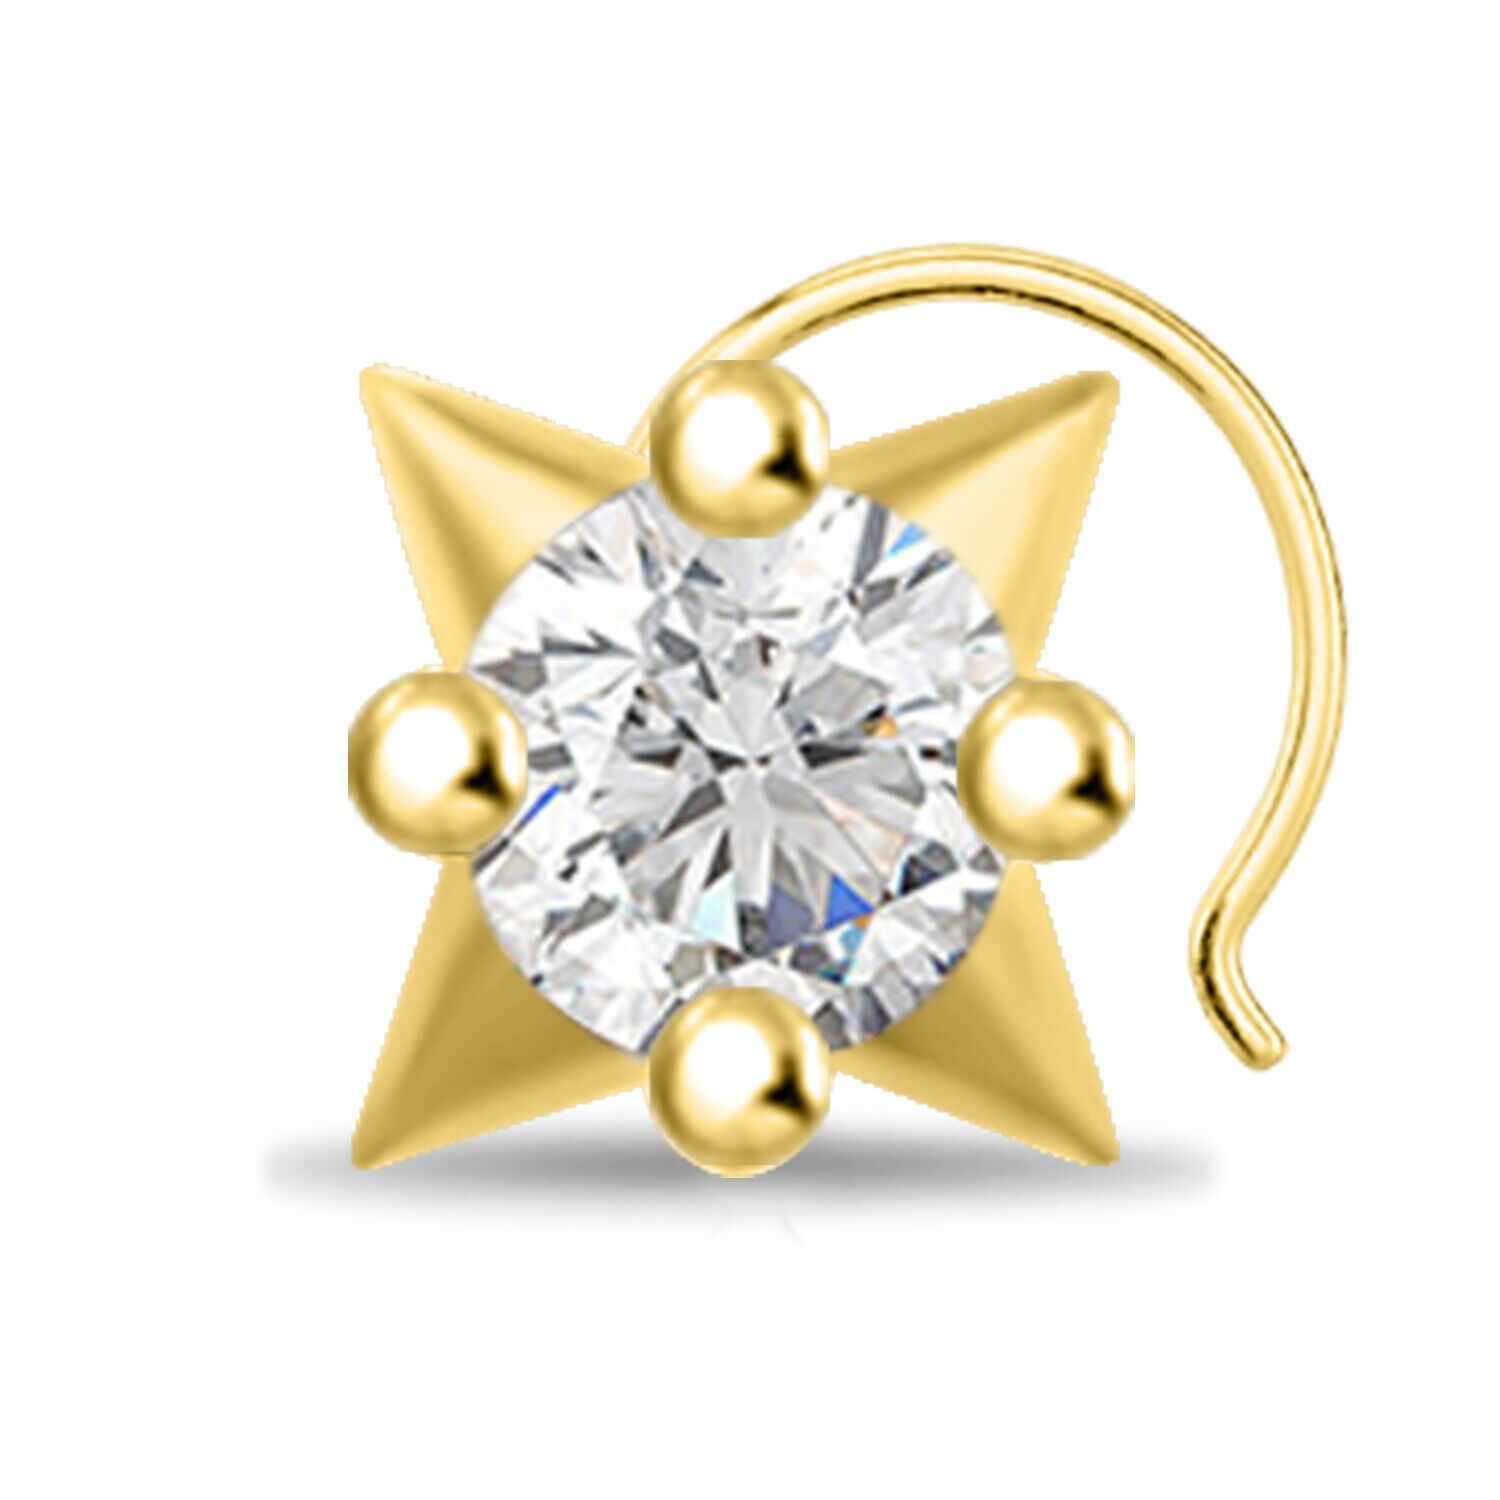 Primary image for 14k Yellow Gold Finish Round Cut Diamond Star Shape Solitaire Nose Pin 0.74Carat